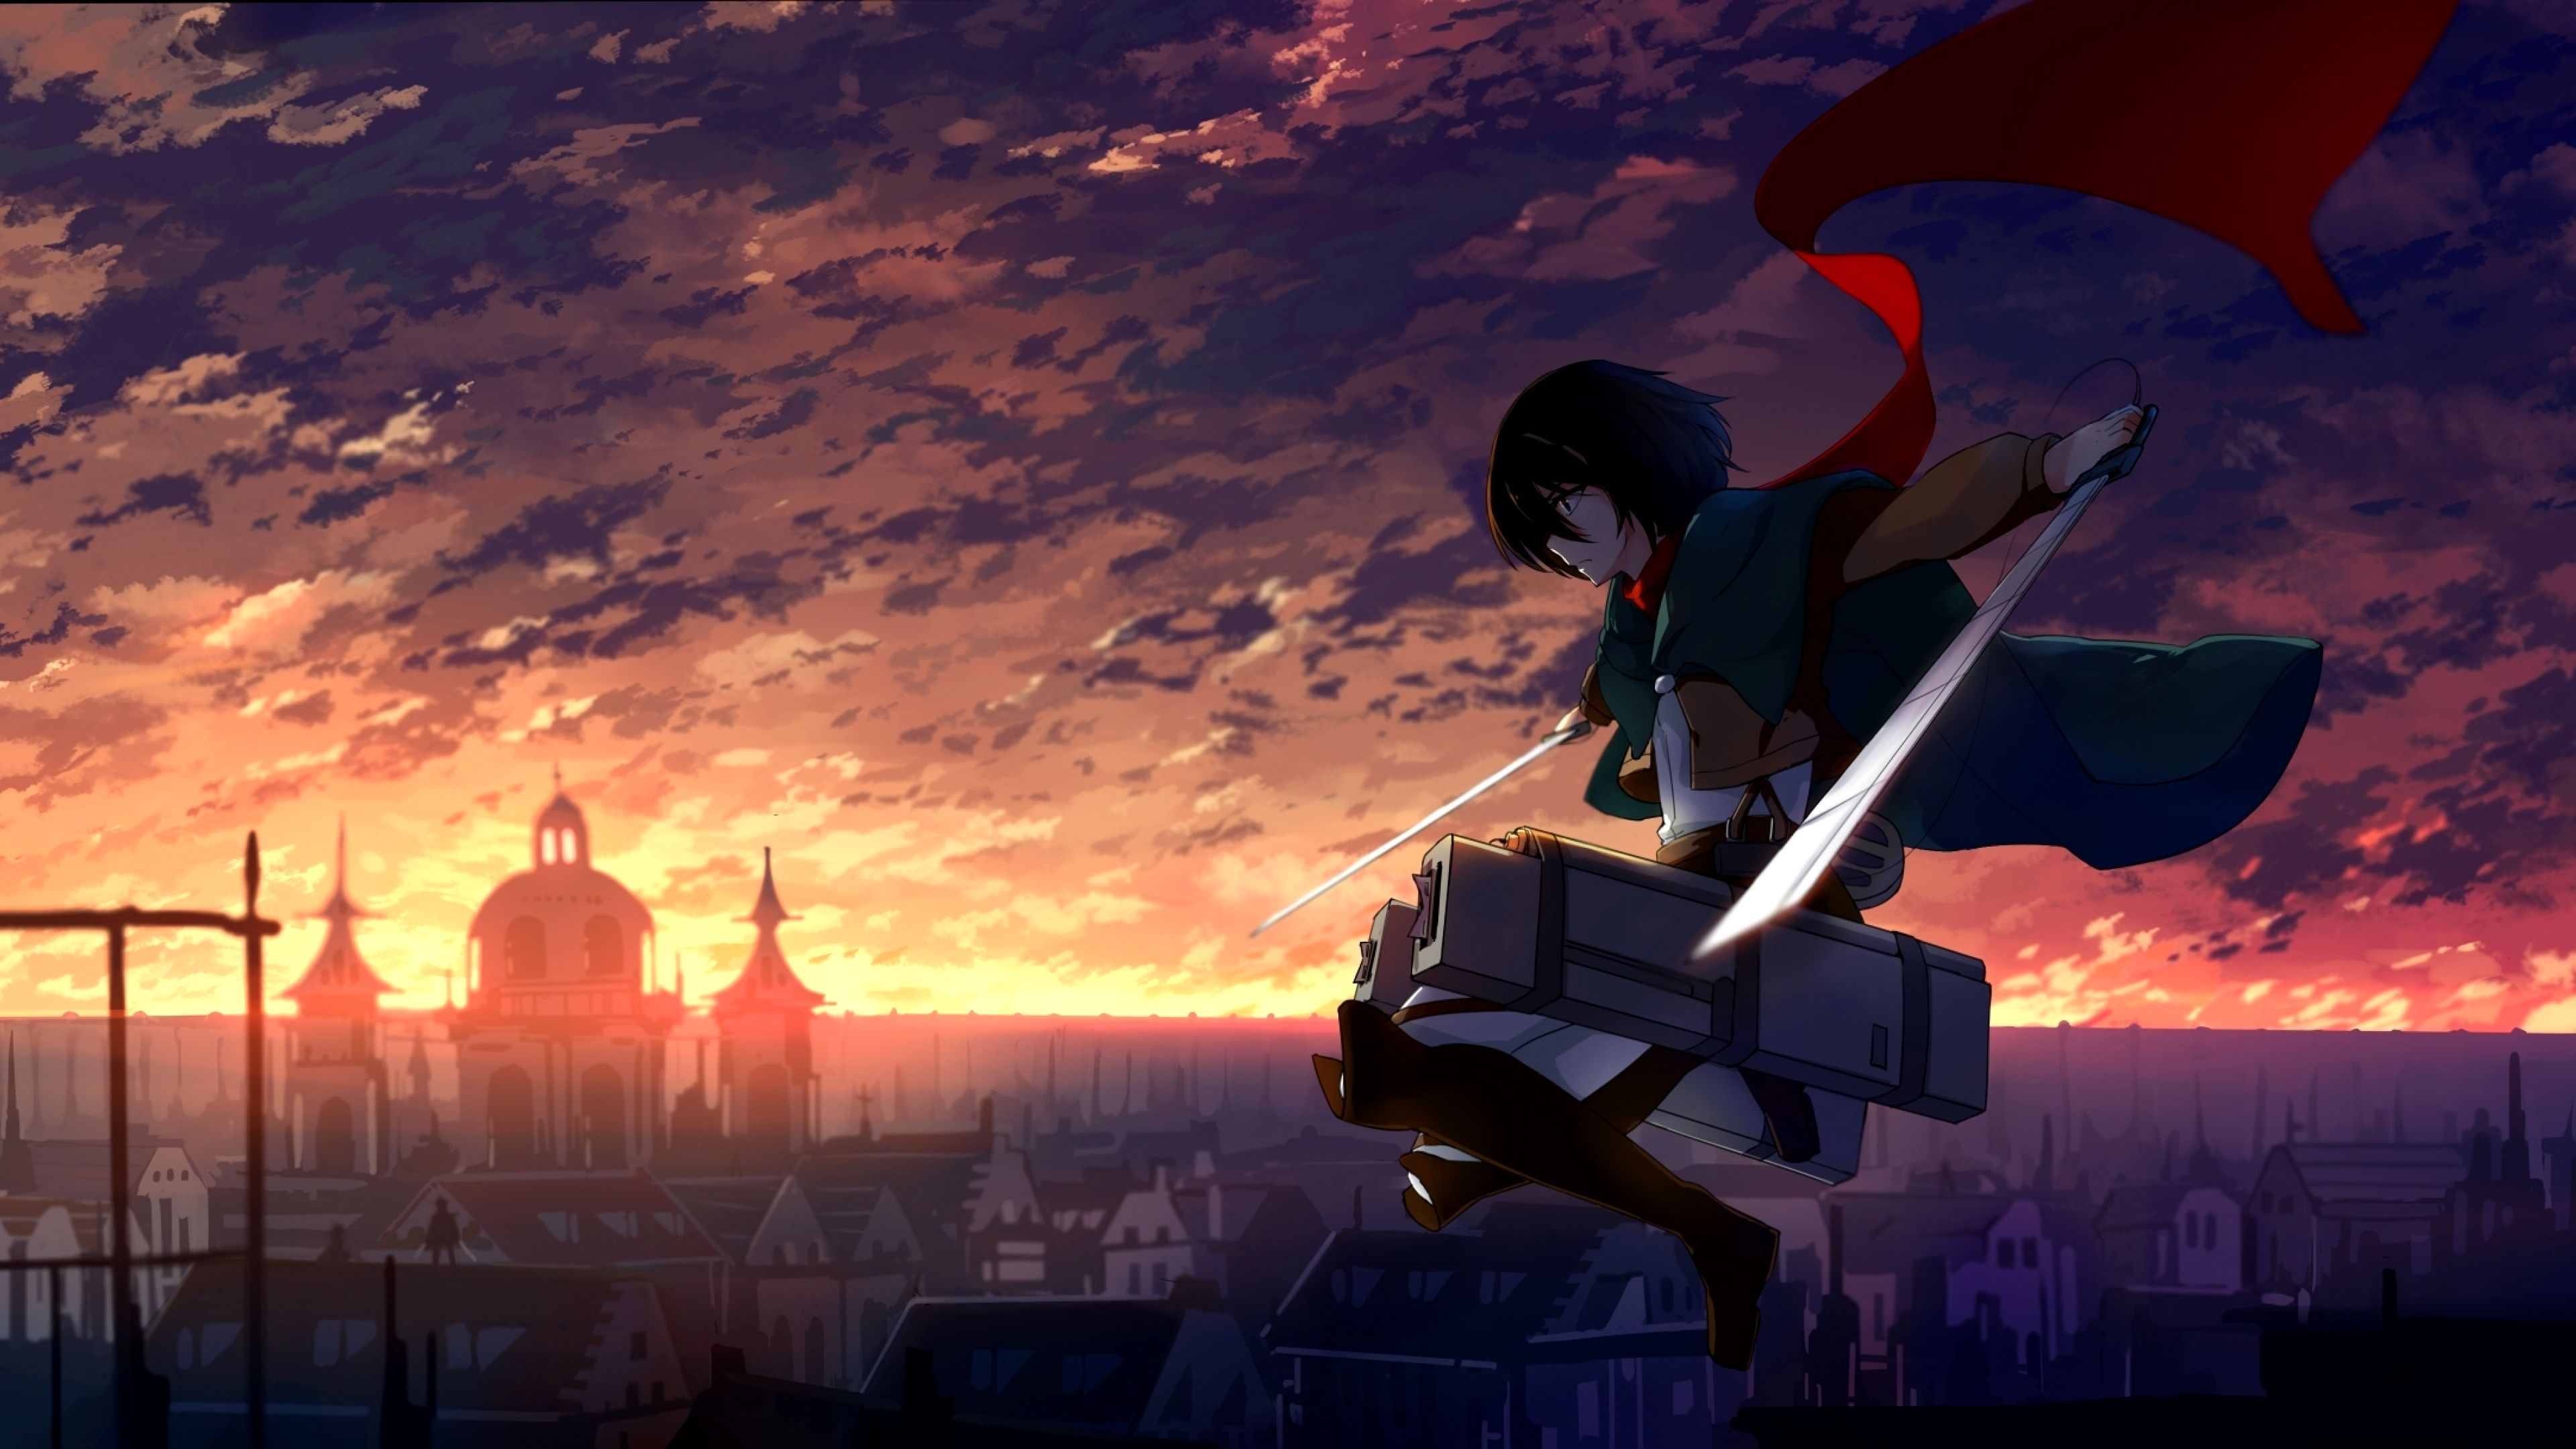 Shingeki No Kyojin Wallpaper 4k Pc Trick En 2020 1366x768 Wallpaper Pantalla De Pc Fondo De Pantalla De Anime